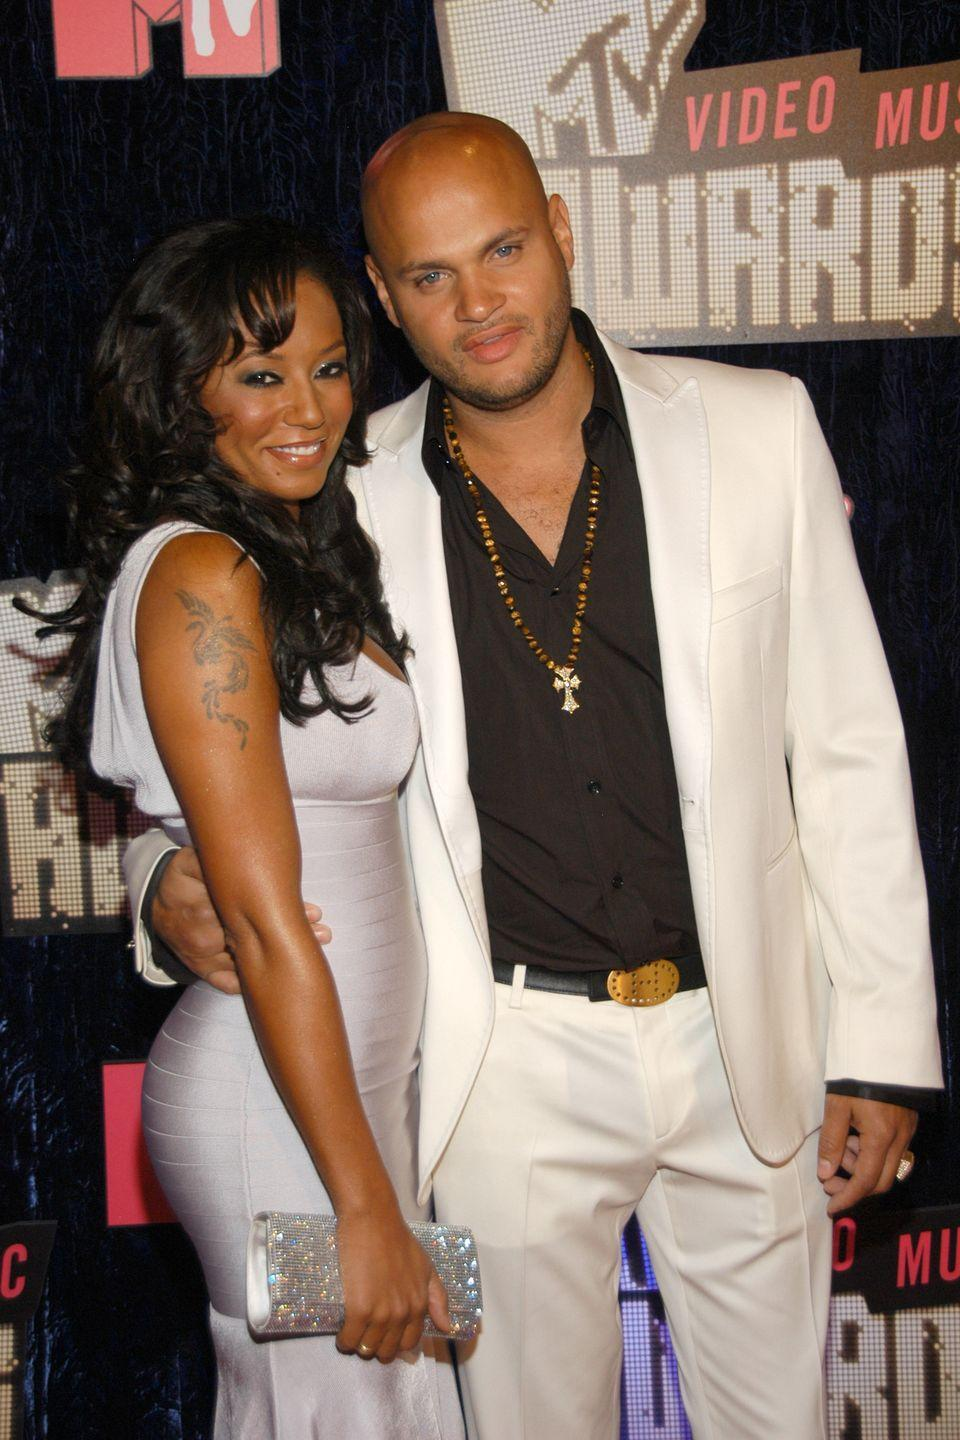 """<p>Mel B and her longtime friend, movie producer Stephen Belafonte, eloped in Las Vegas in 2007. The couple <a href=""""https://www.dailymail.co.uk/tvshowbiz/article-474183/Mel-Bs-secret-Las-Vegas-wedding.html"""" rel=""""nofollow noopener"""" target=""""_blank"""" data-ylk=""""slk:filed for their marriage license"""" class=""""link rapid-noclick-resp"""">filed for their marriage license</a> in Las Vegas county, but the whereabouts of their ceremony weren't disclosed. </p>"""